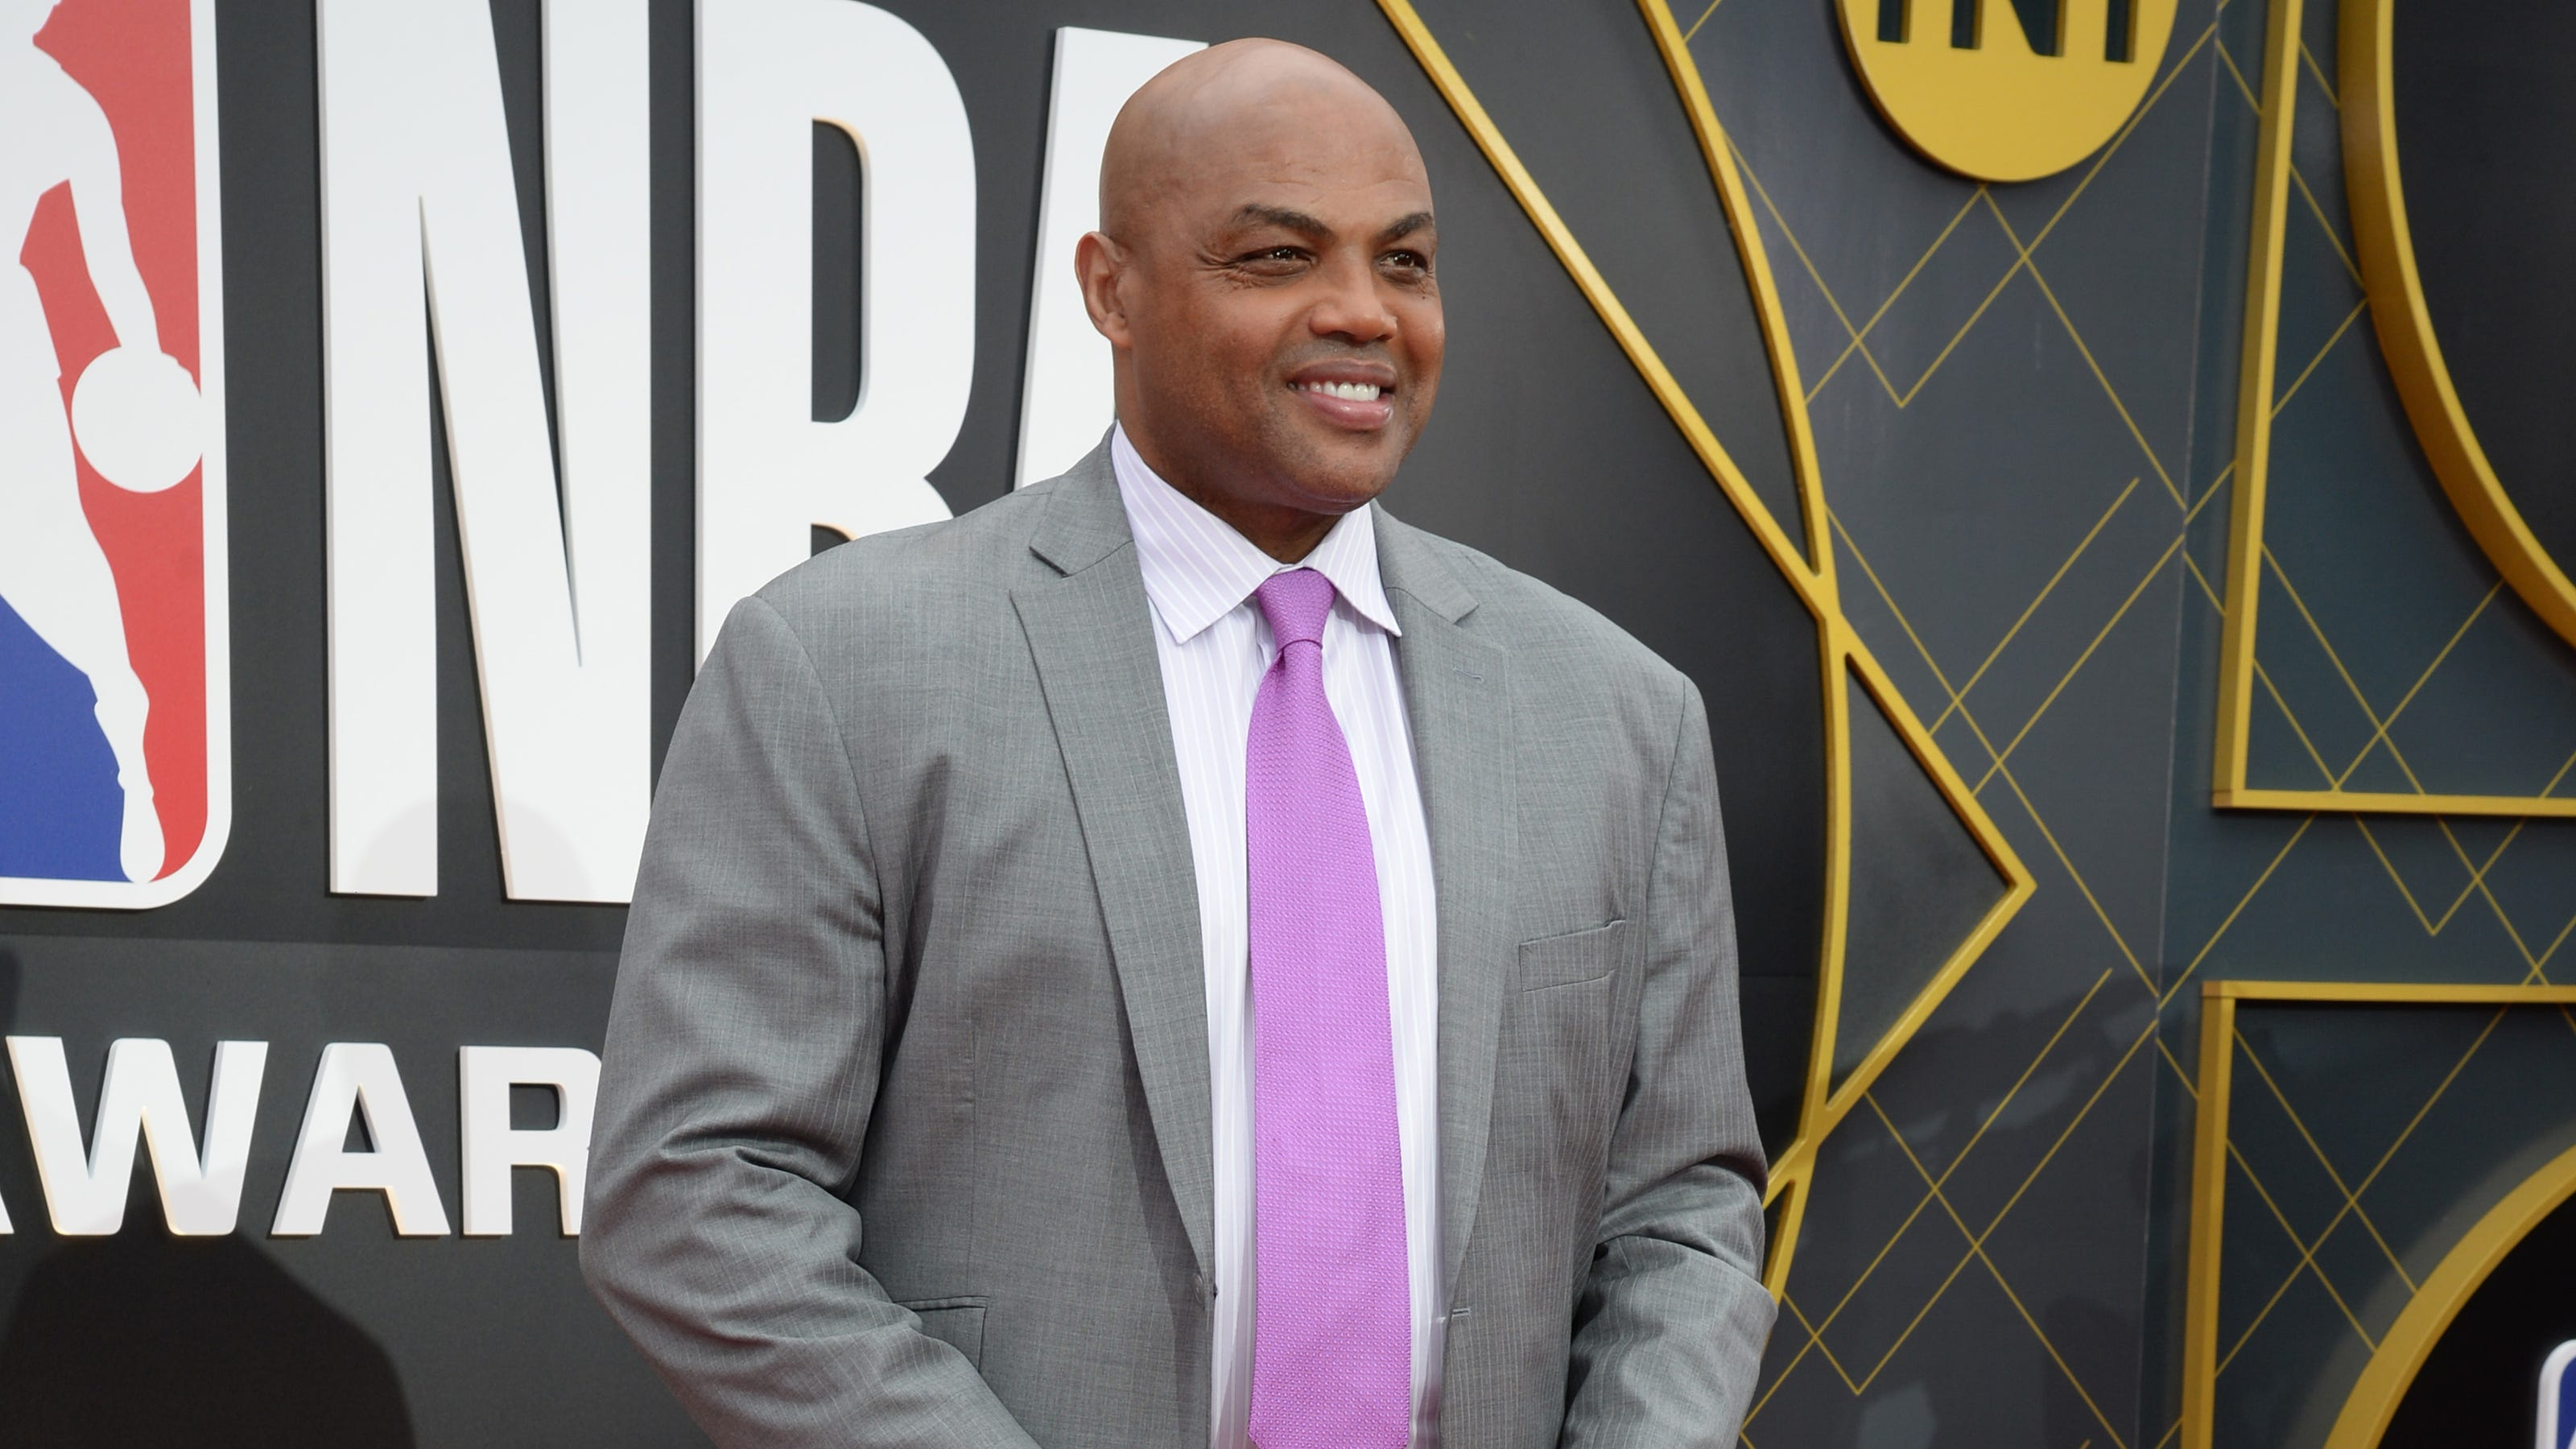 Charles Barkley: Zion Williamson isn't fat but must lose weight